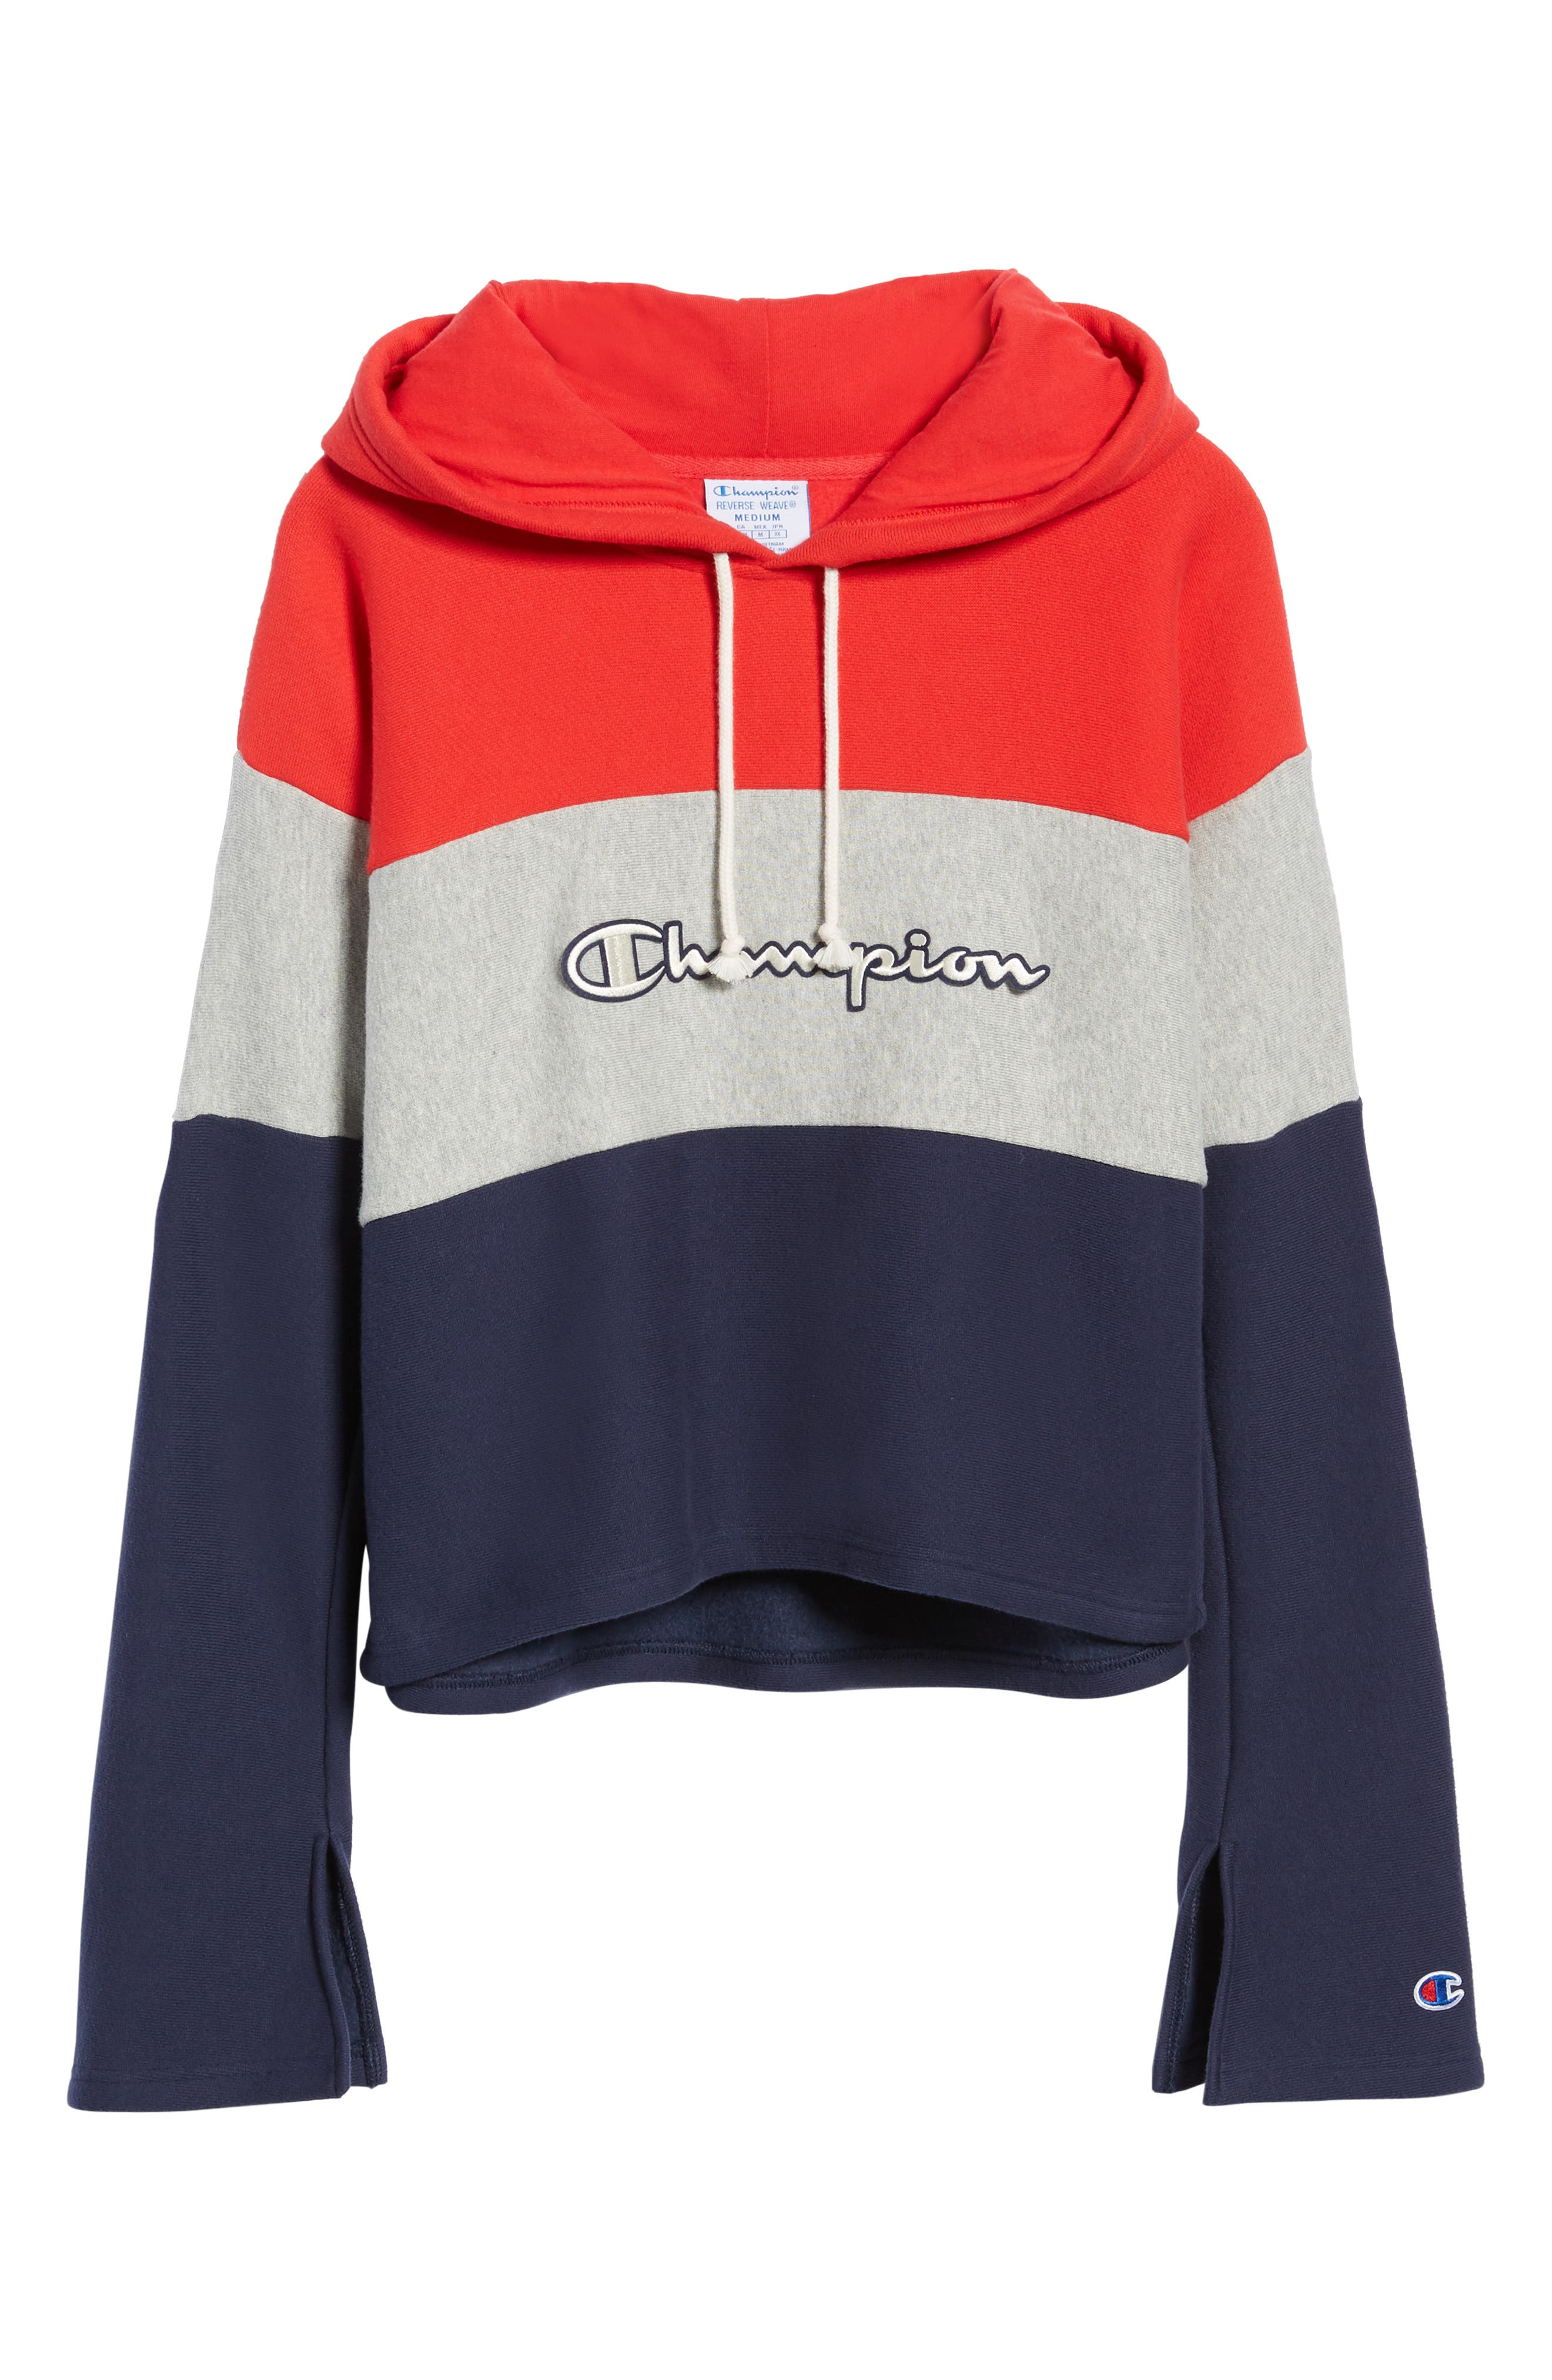 Colorblock Hoodie,                             Alternate thumbnail 7, color,                             RED SPK/ OXFRD GRY/ IMPIND